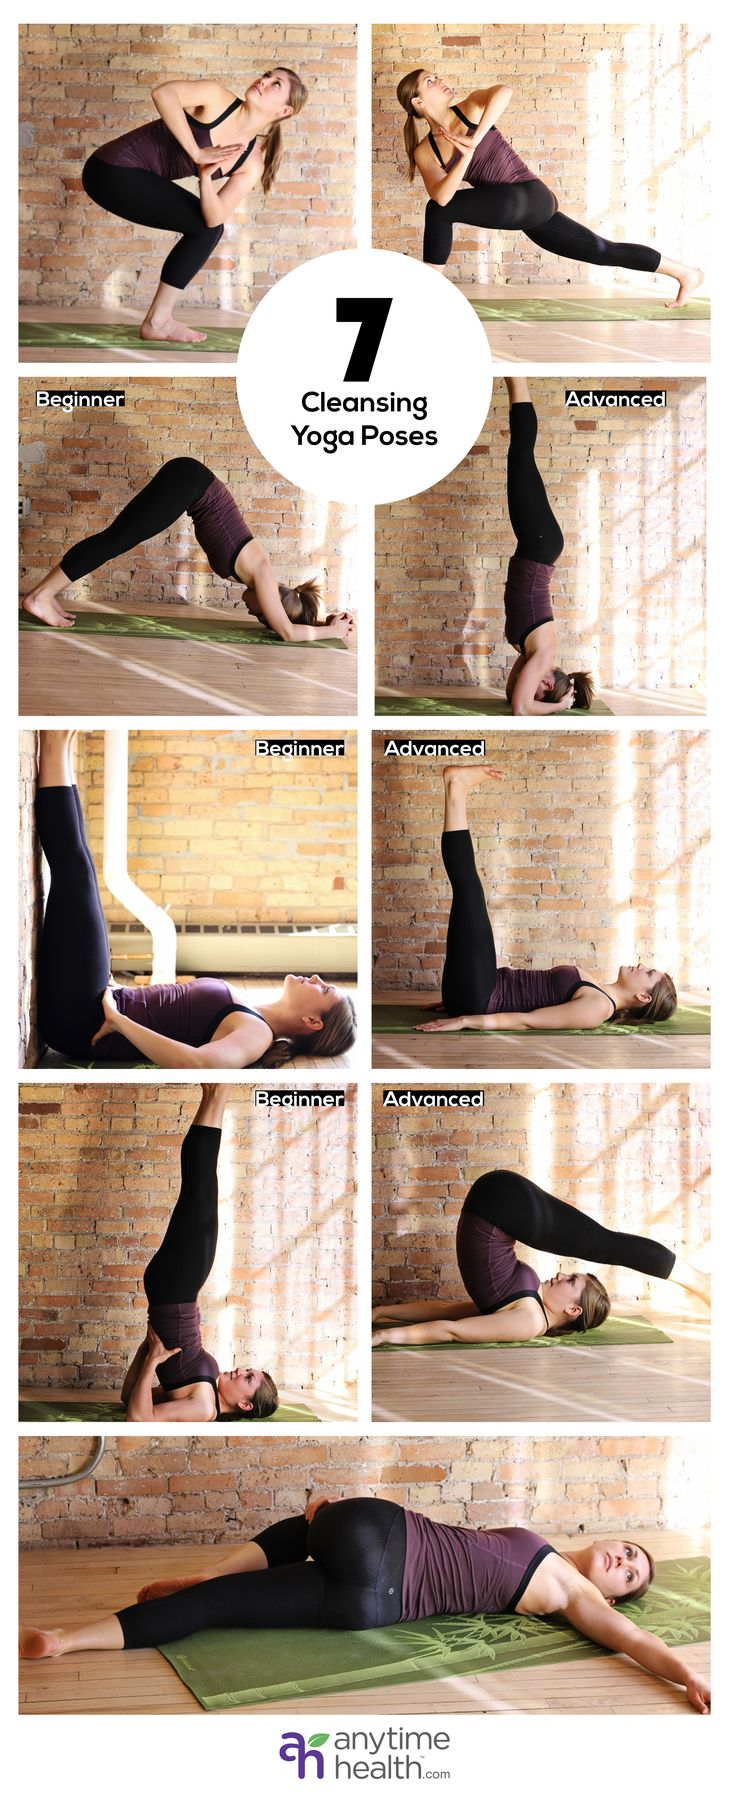 7 Cleansing Yoga Poses